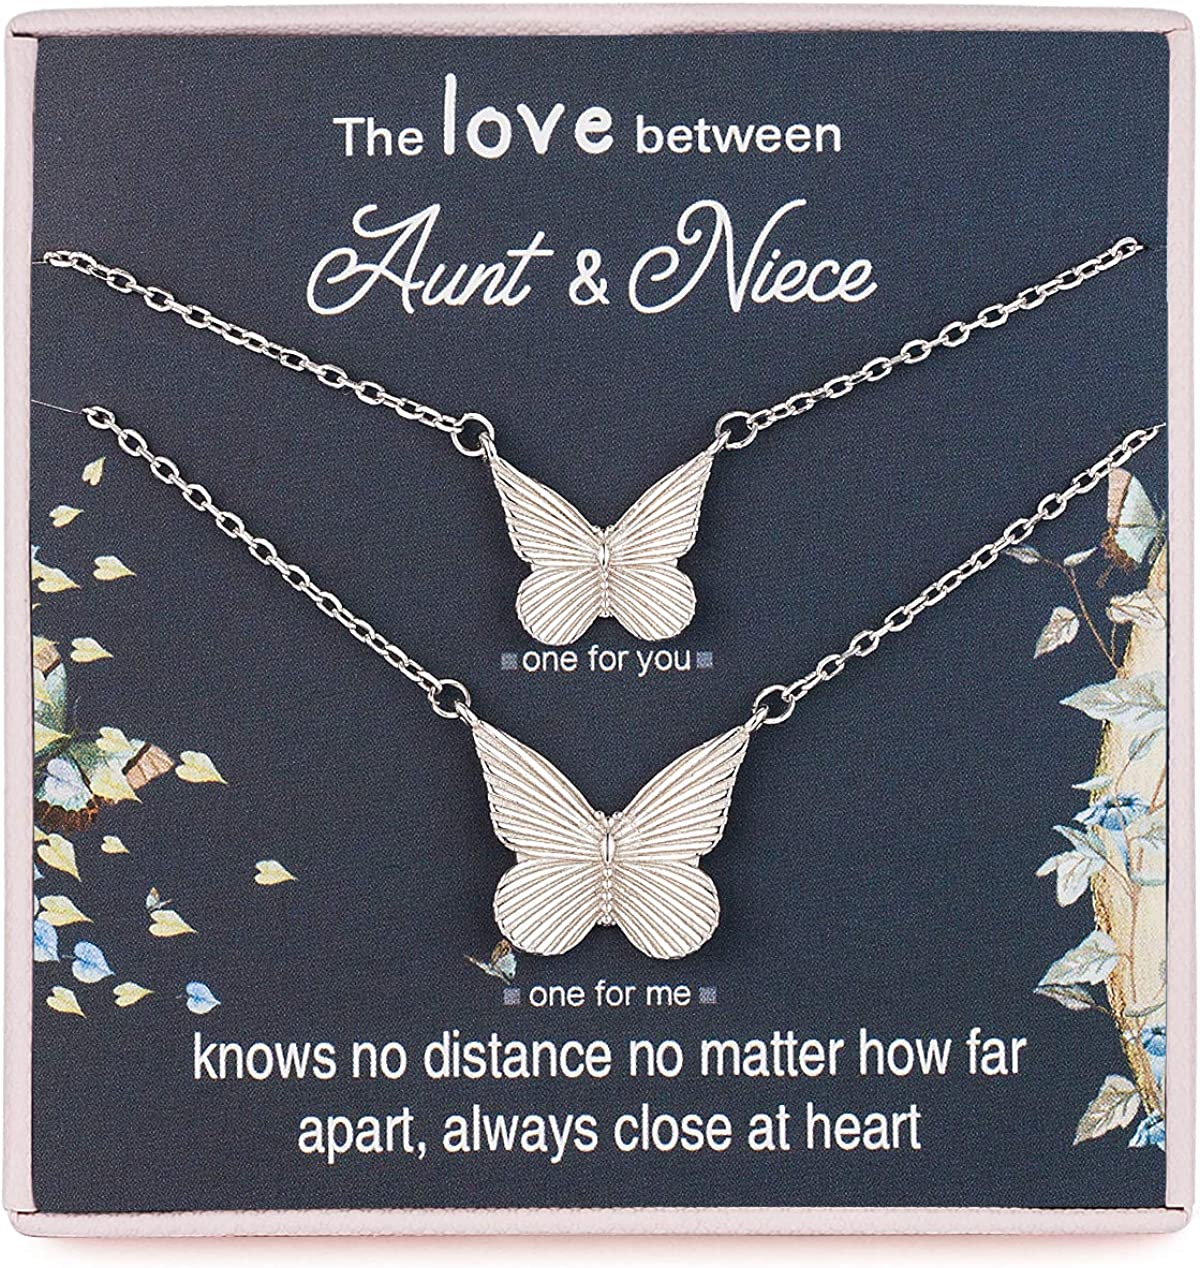 RareLove 2PCS Aunt Niece Necklace Set for 2 Small and Big Butterflies 925 Sterling Silver Butterfly Pendant Necklace Long Distance Relationship Gifts for Aunt from Niece